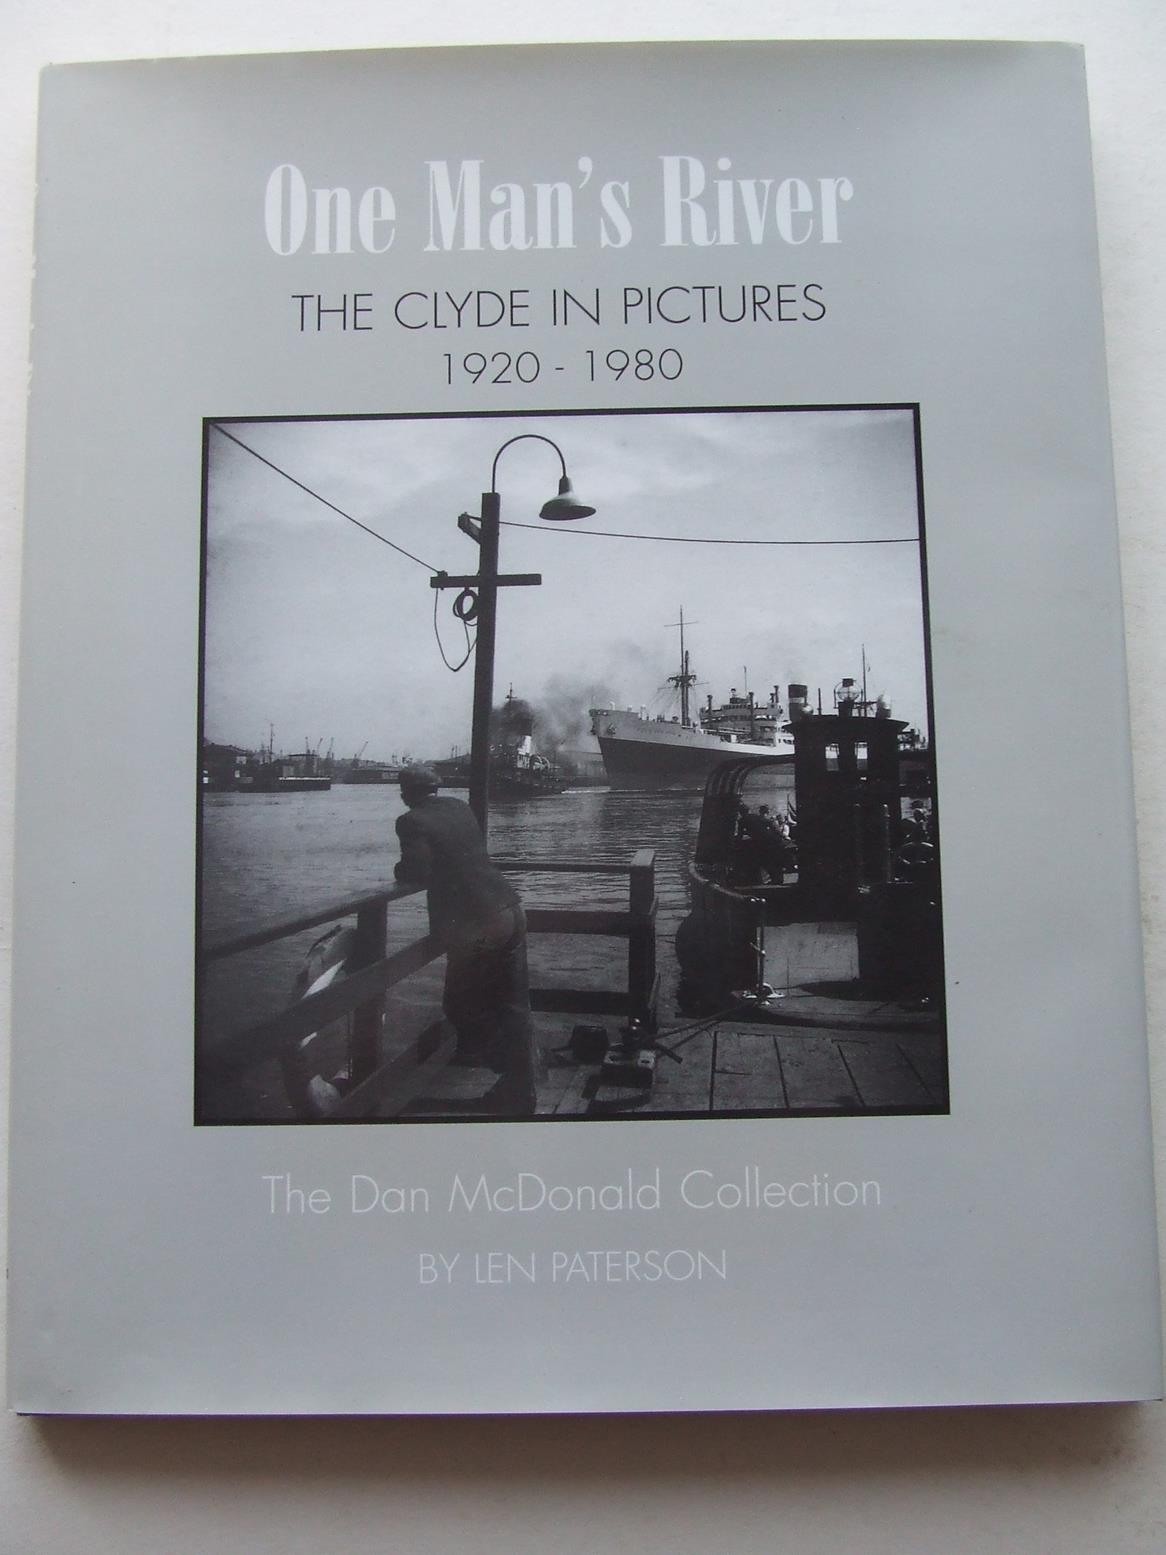 One Man's River, the Clyde in Pictures 1920-1980